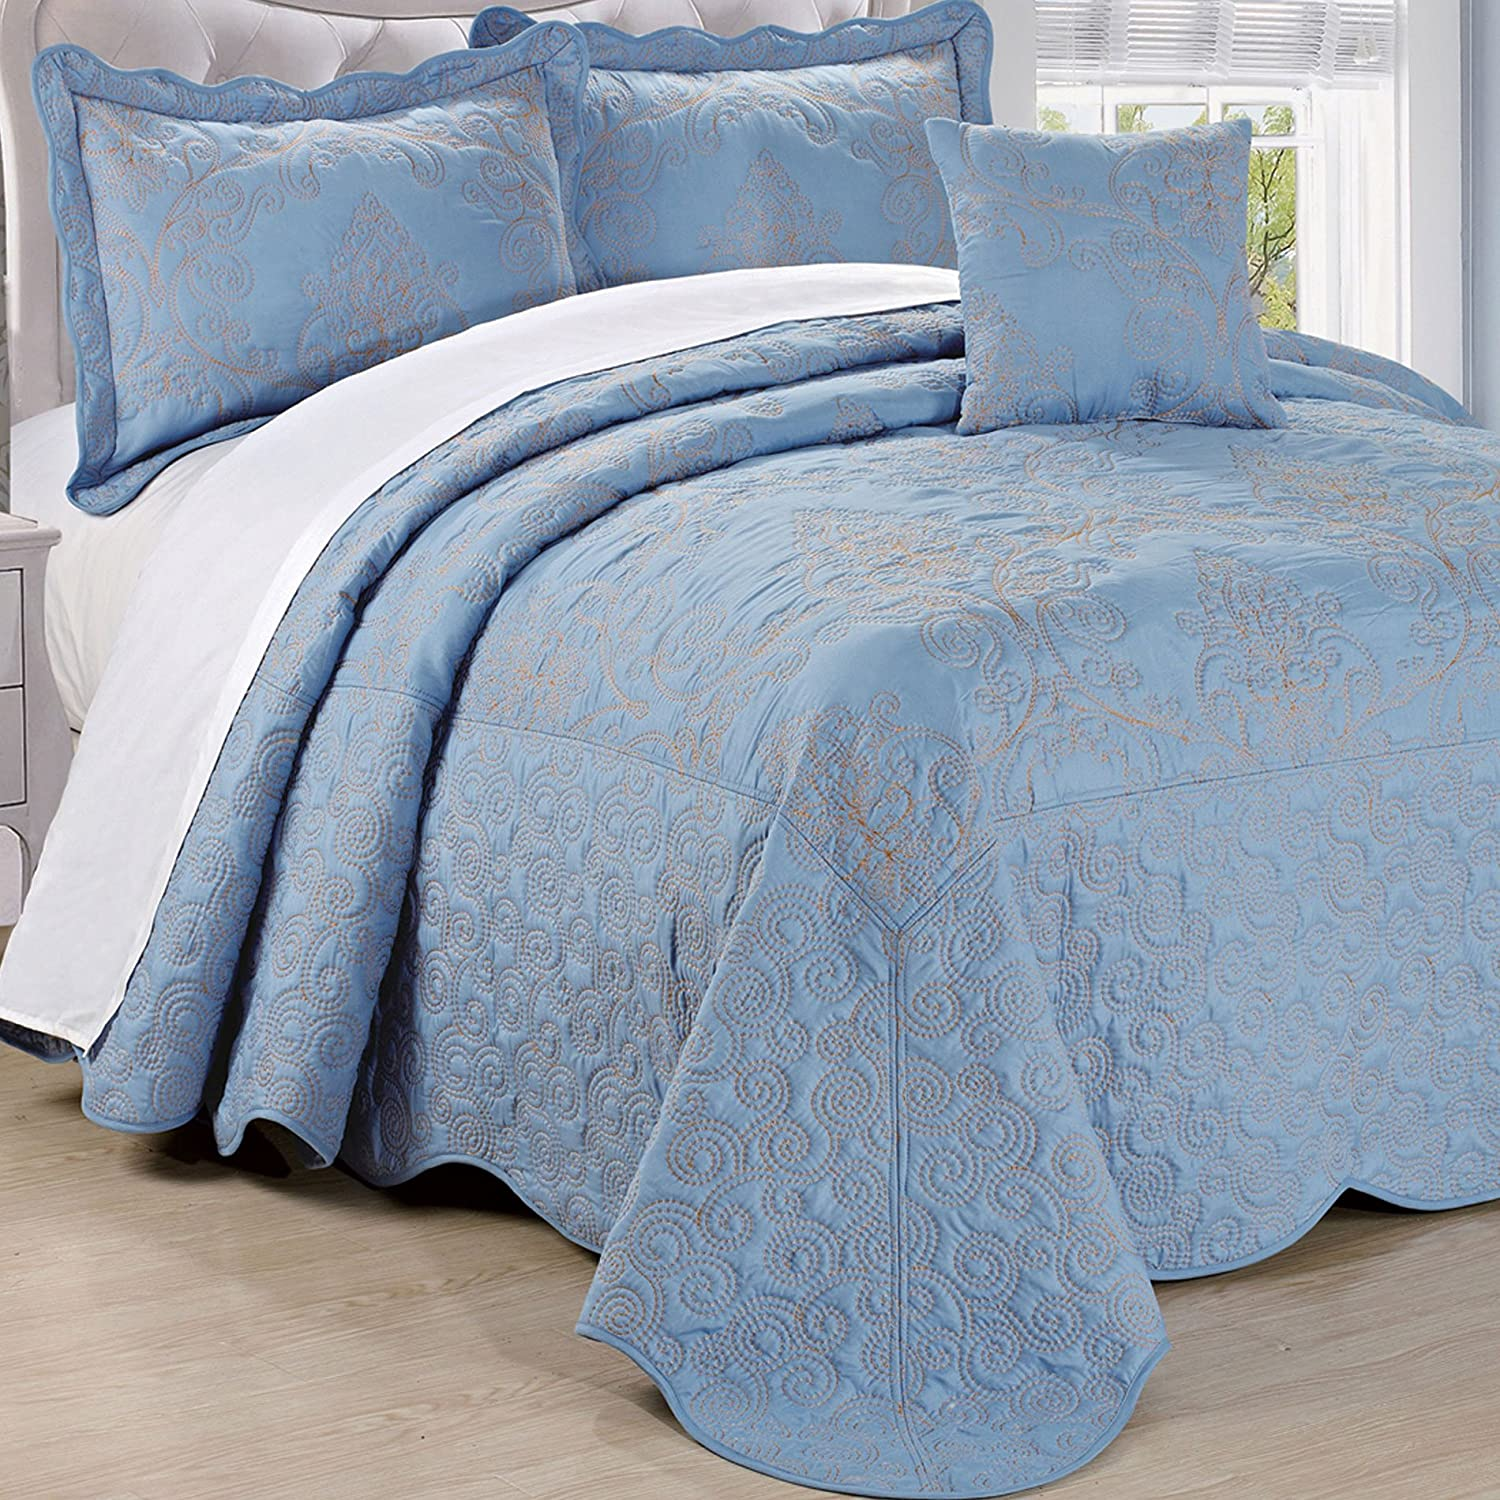 Home Soft Things Serenta Damask 4 Piece Bedspread Set, King, Forget Me Not